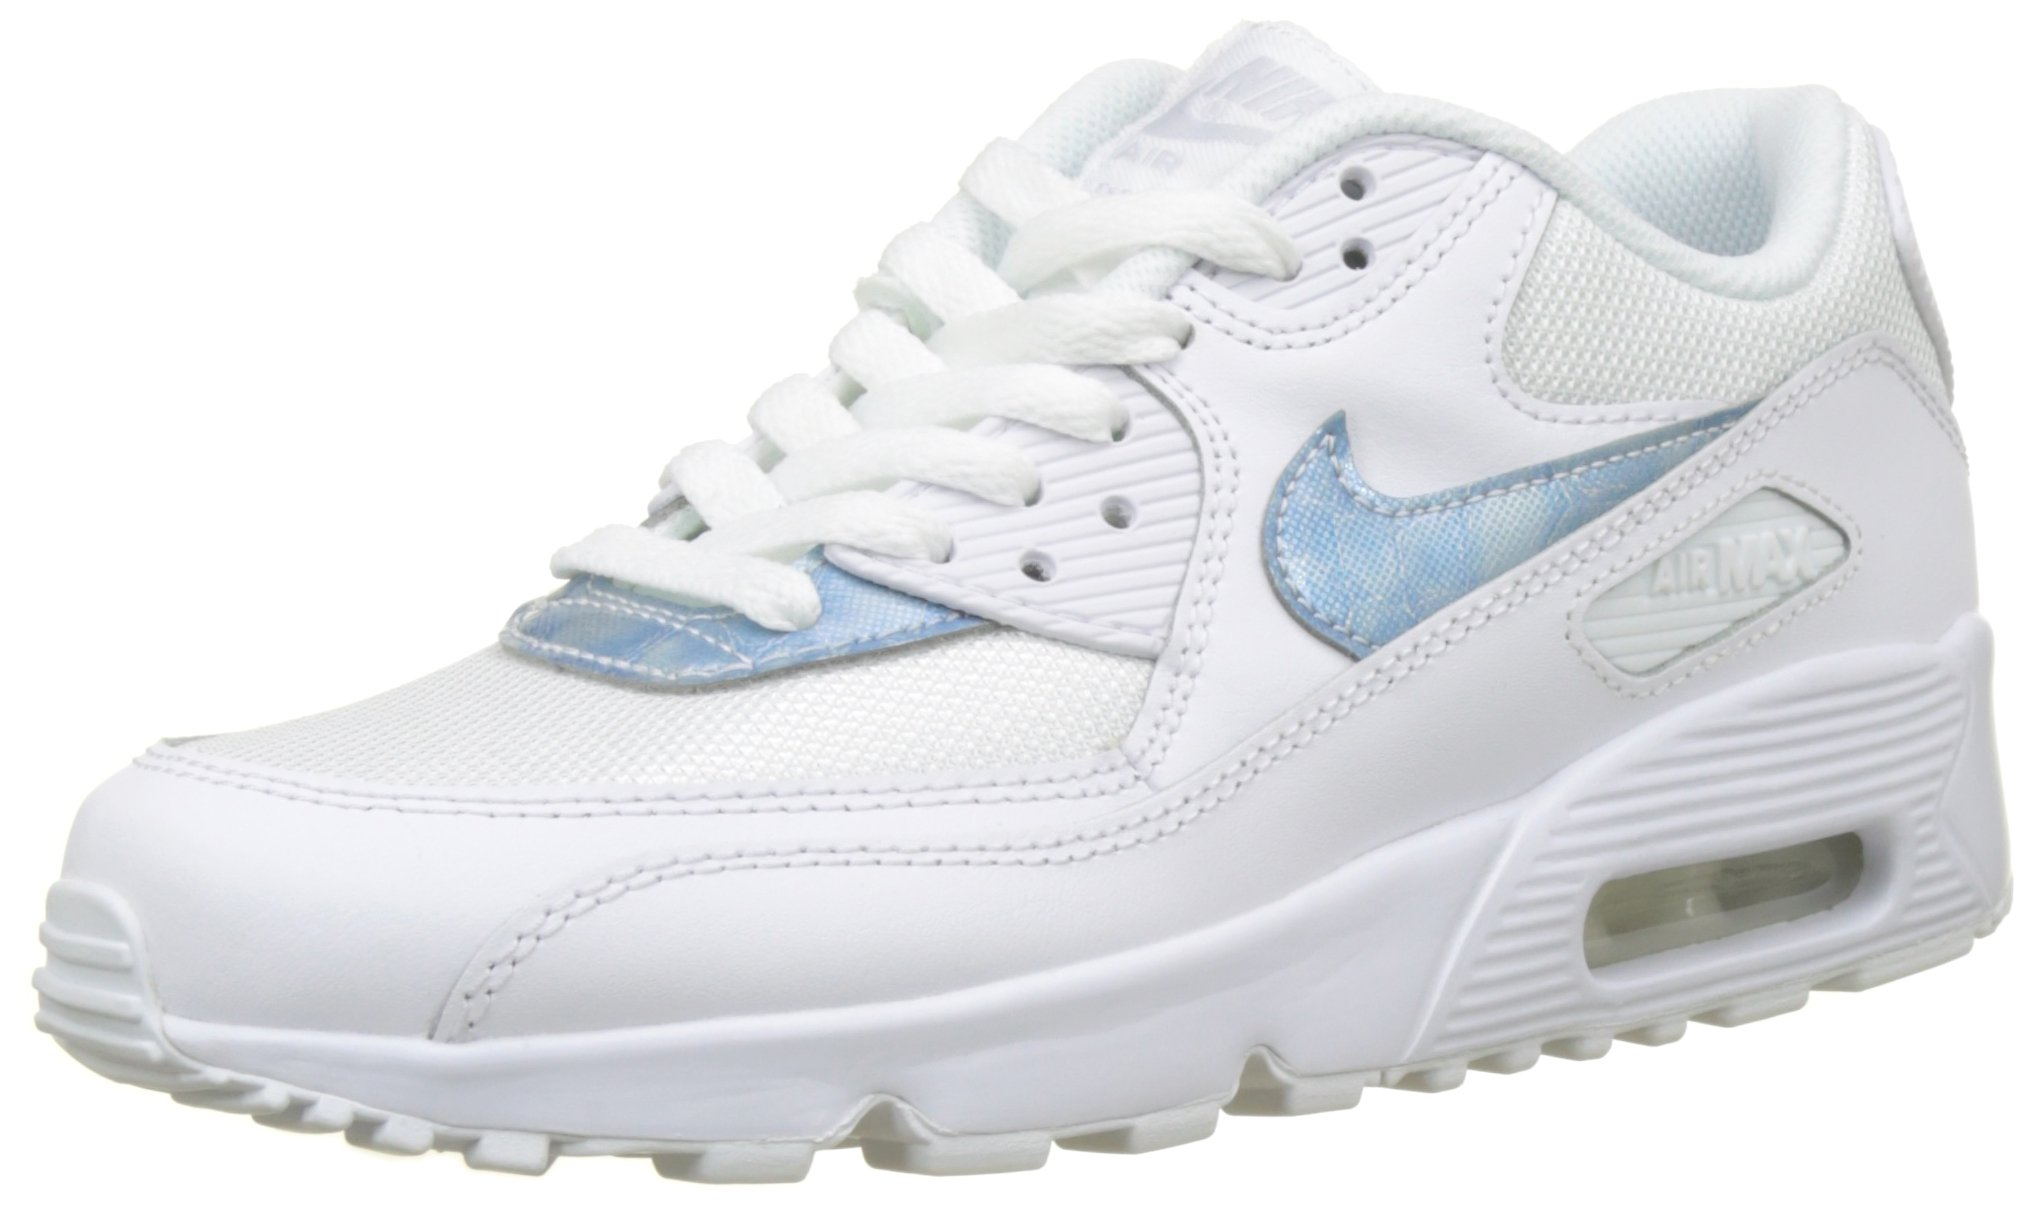 49bde63b3f Galleon - Nike Air Max 90 Mesh GS Running Trainers 833418 Sneakers Shoes  (UK 3.5 Us 4Y EU 36, White Royal 111)